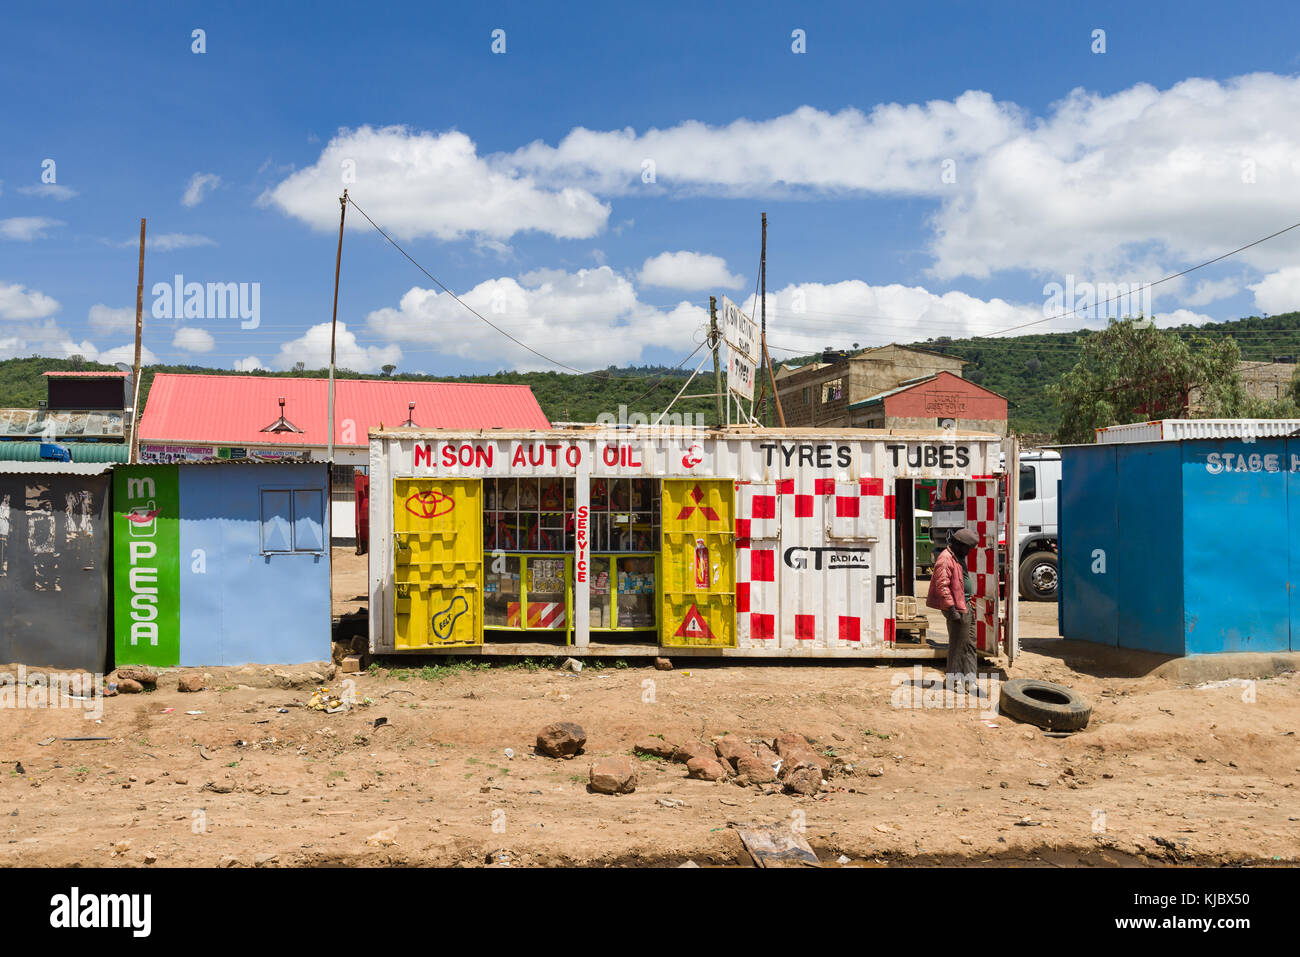 An African man stands by a shop made from a reused shipping container by the roadside, Kenya, East Africa - Stock Image